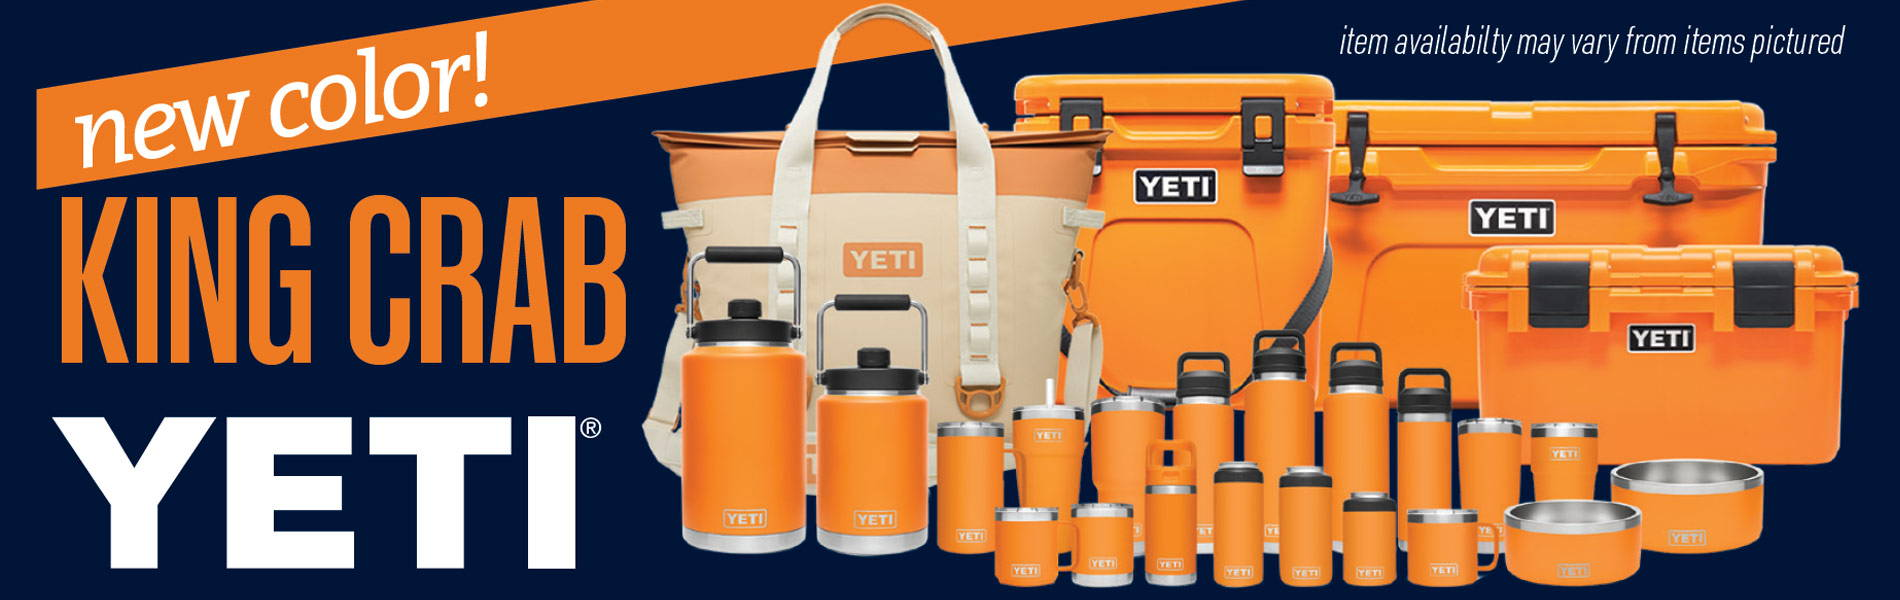 NEW COLOR! King Crab Orange - Shop YETI in Stock Now